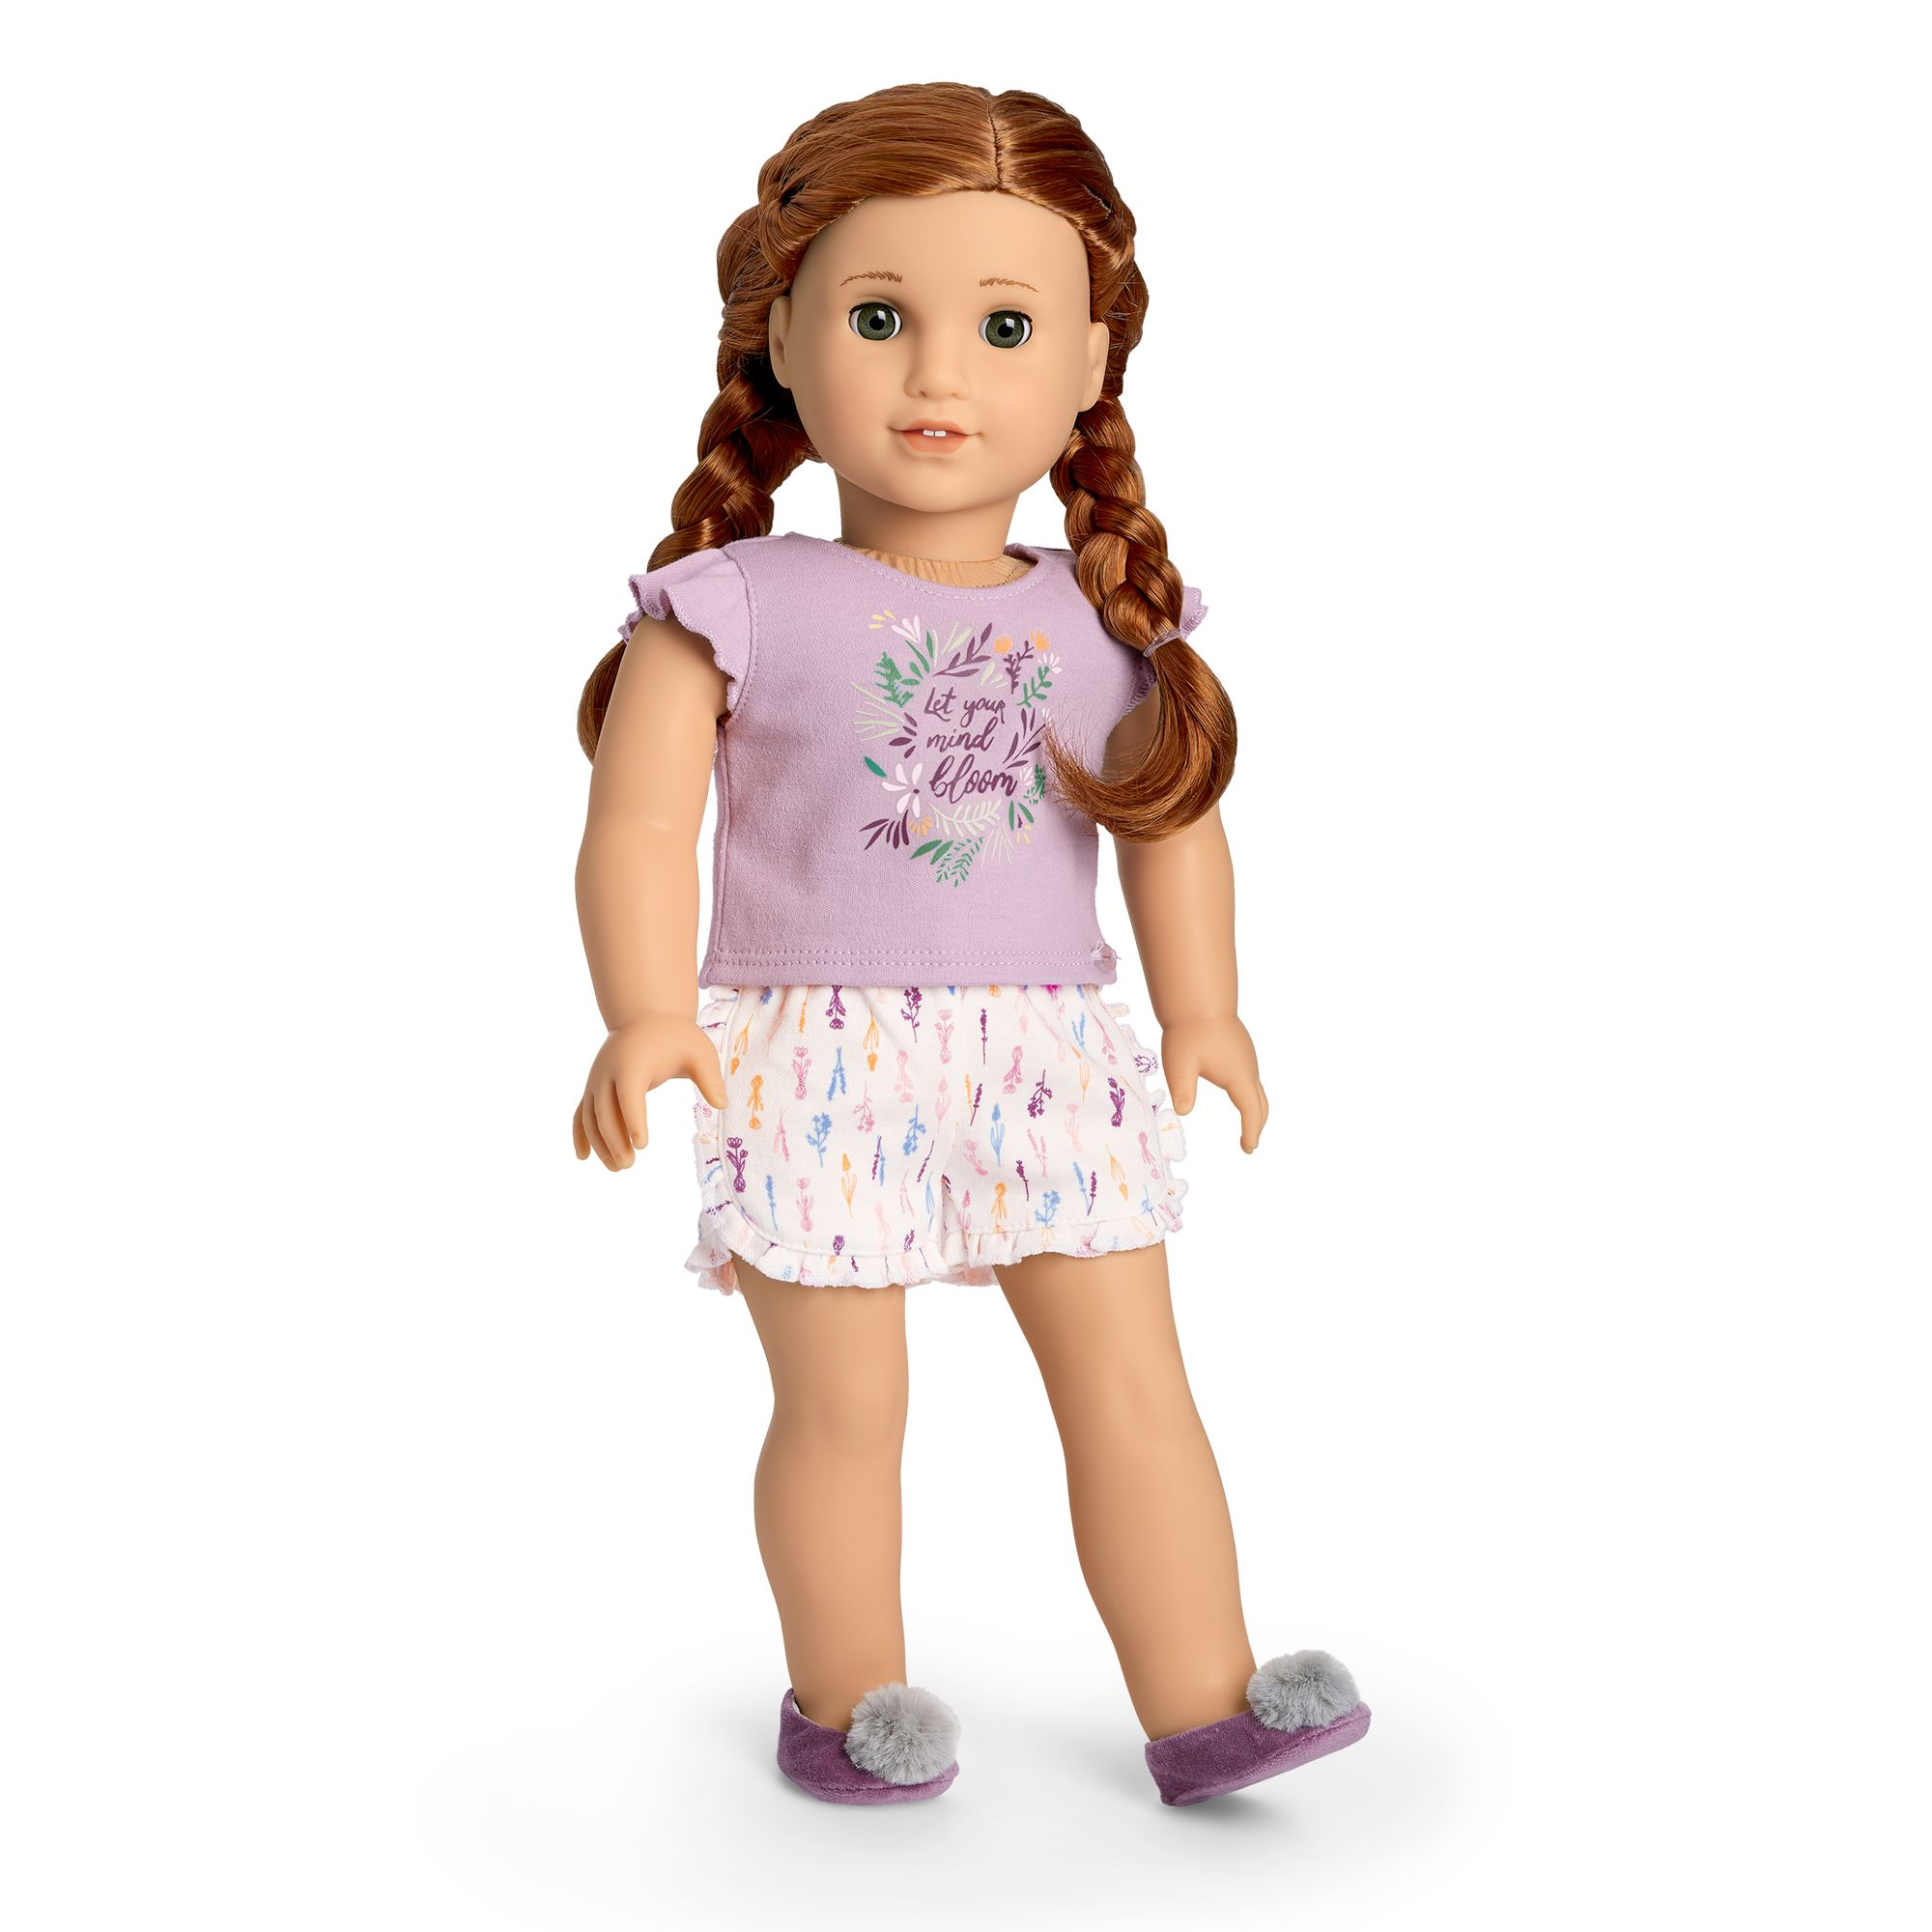 Blaire's In Bloom PJs